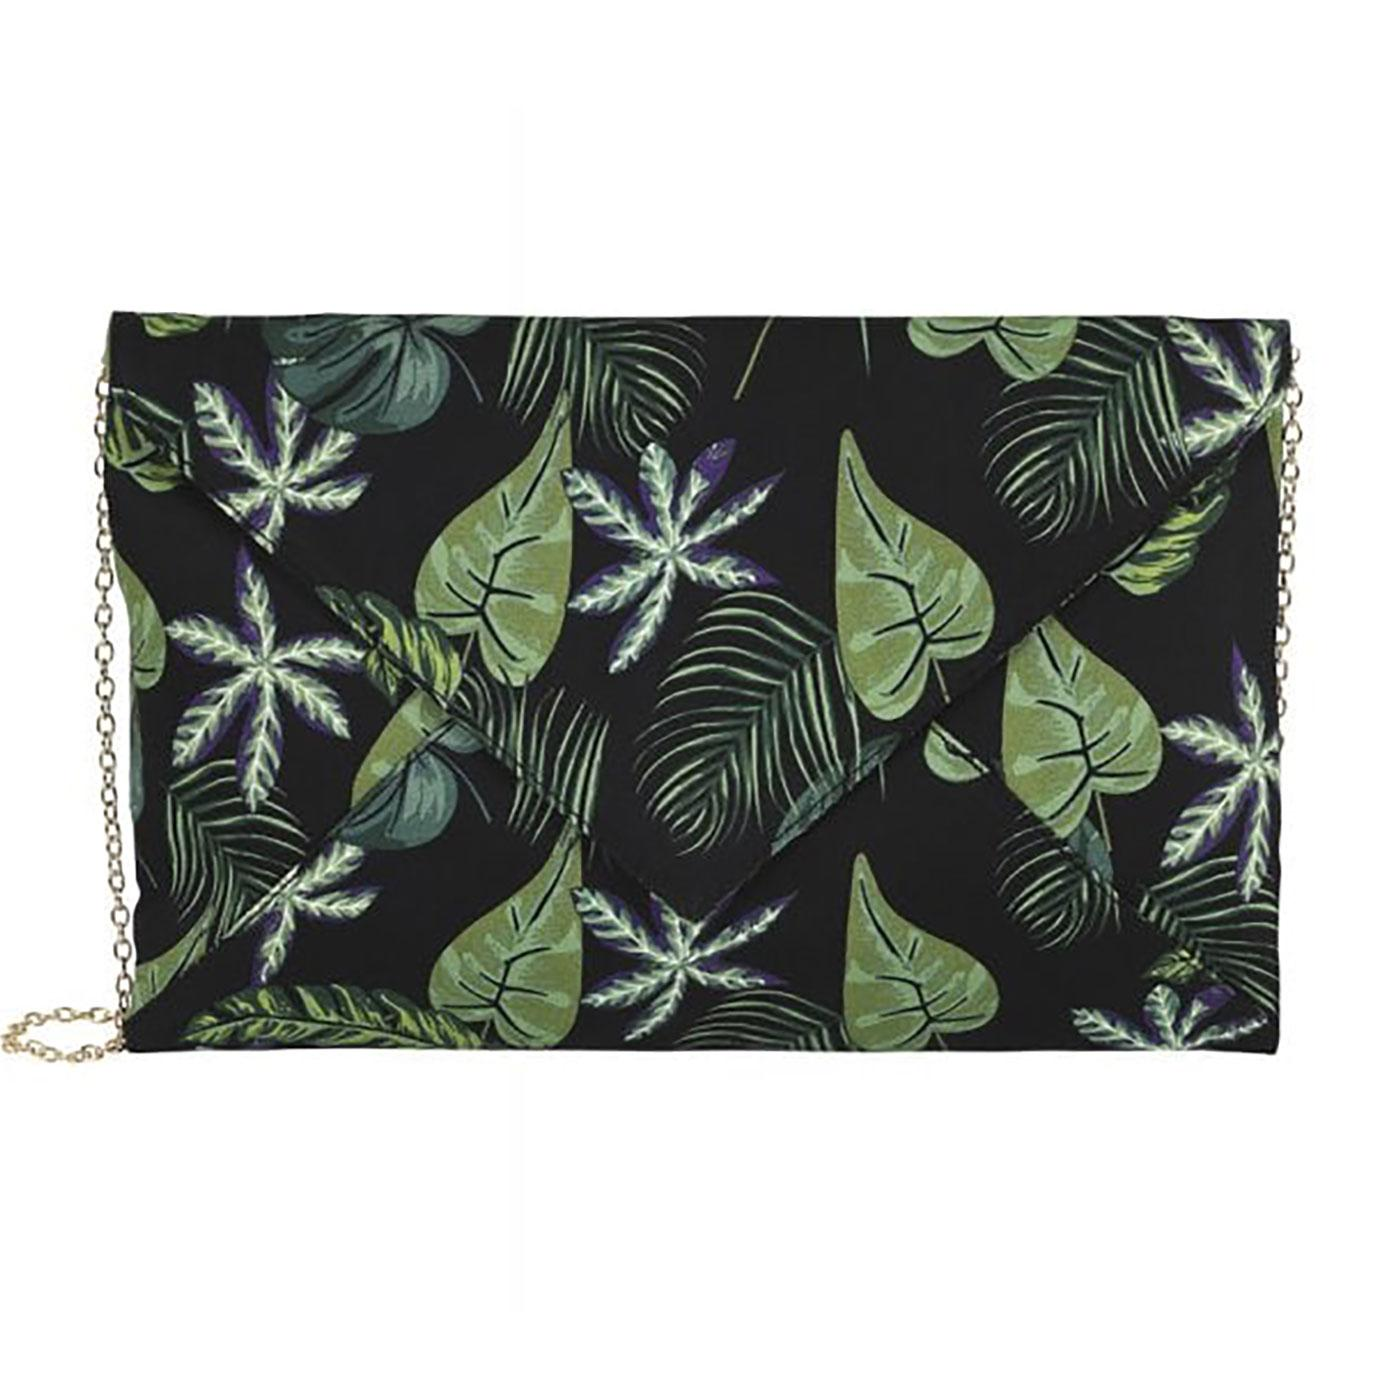 Esty COLLECTIF Black Forest Leaf Print Clutch Bag